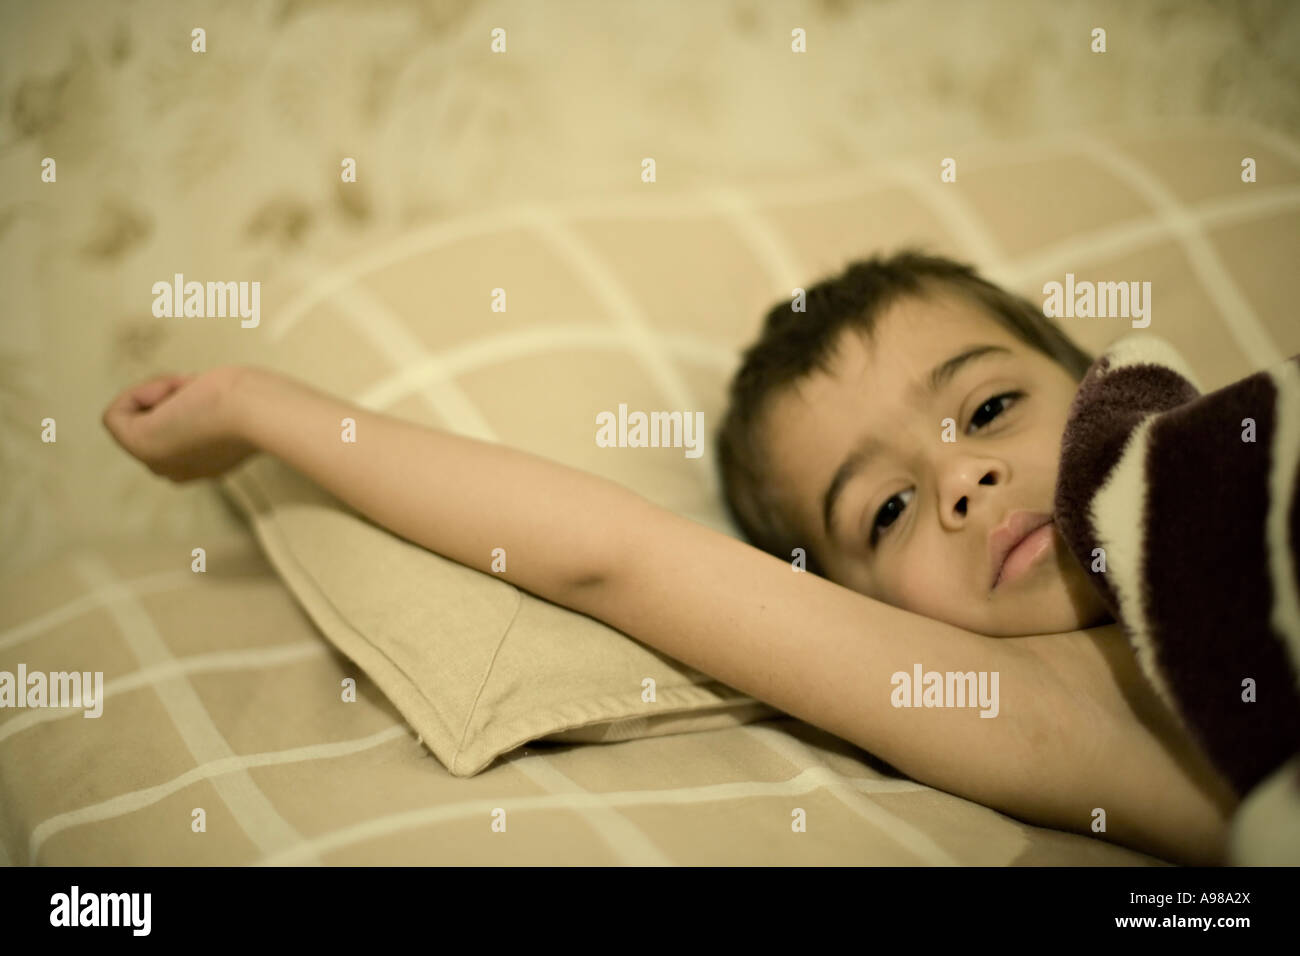 Boy aged 5 lies in bed unwell - Stock Image